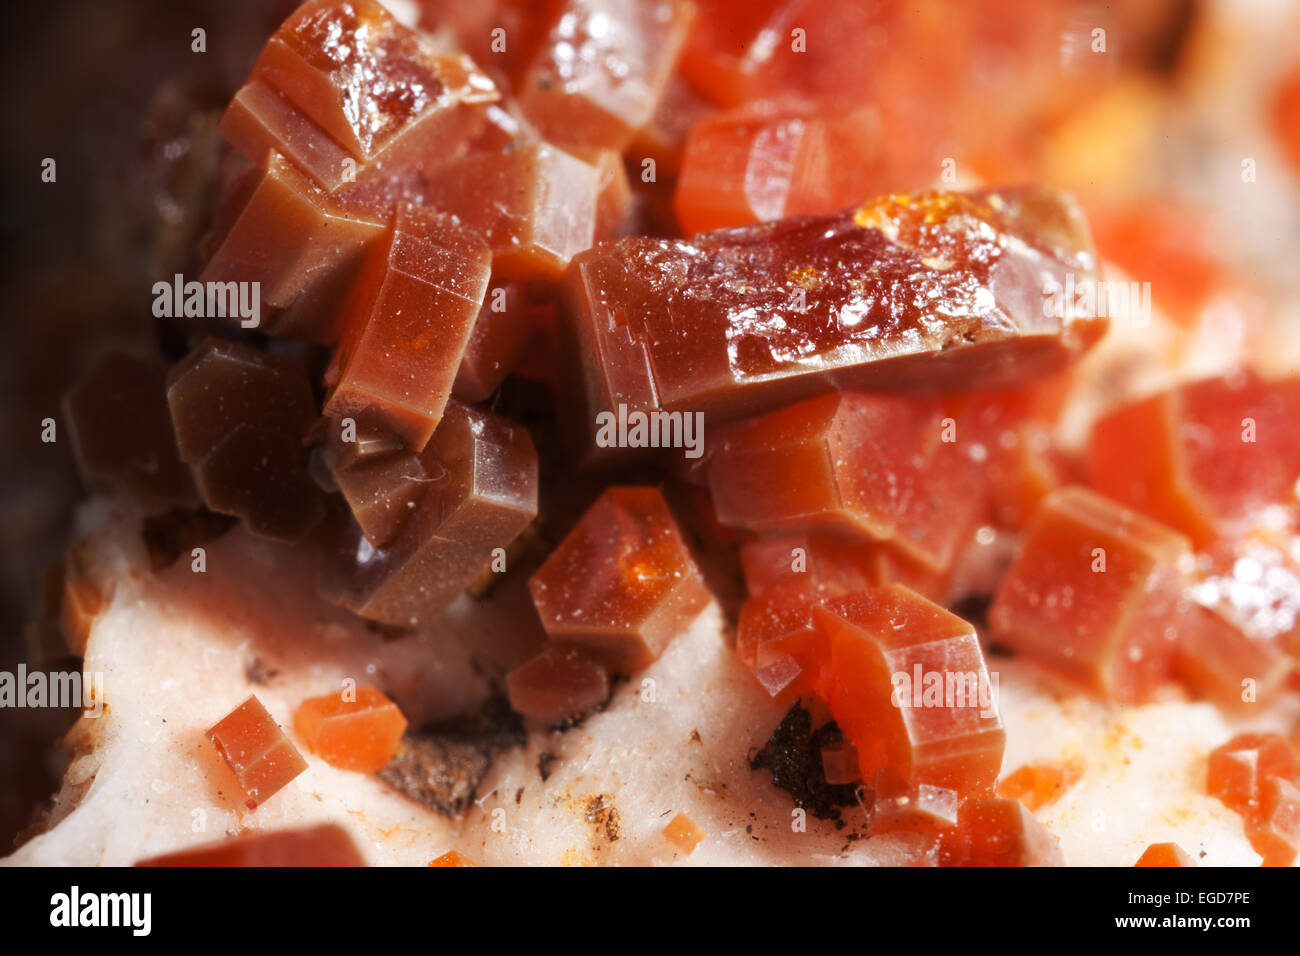 Vanadinite crystals in macrophotography - Stock Image